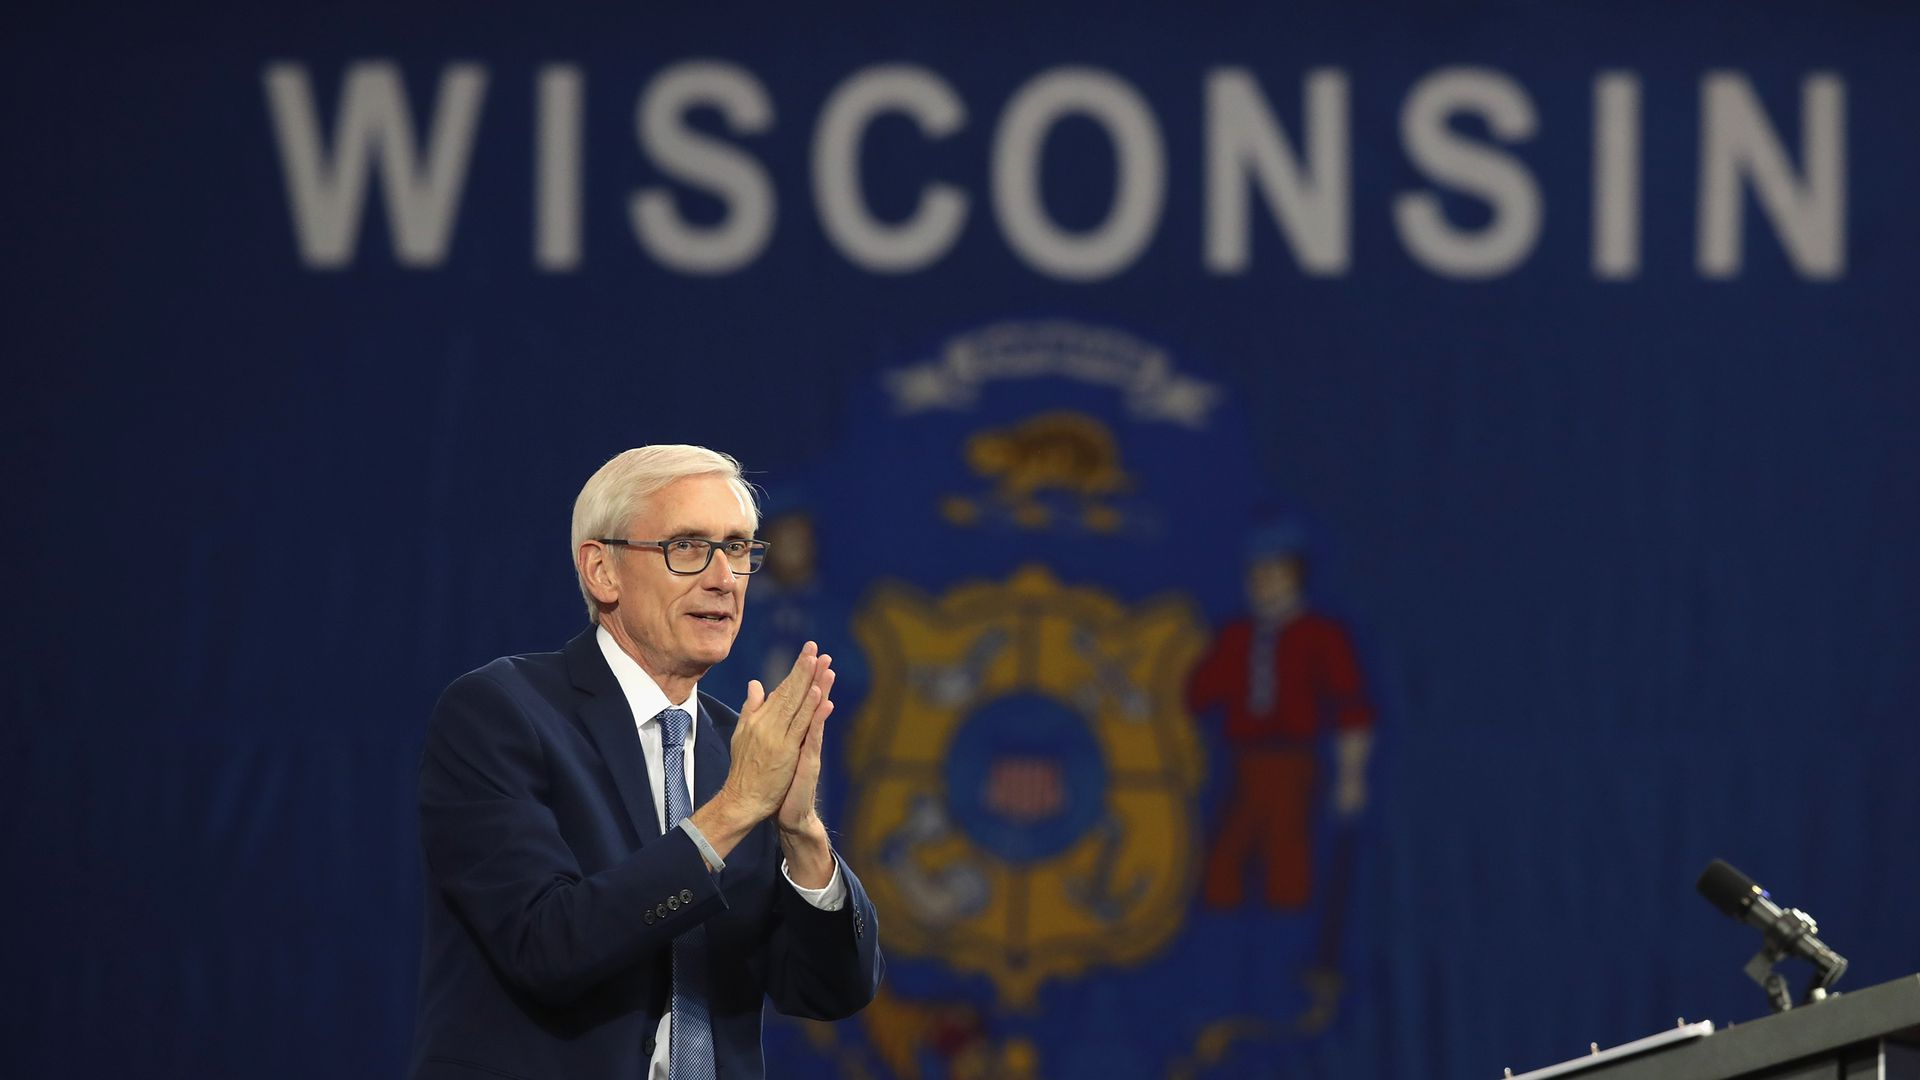 Wisconsin Democratic Gov. Tony Evers.